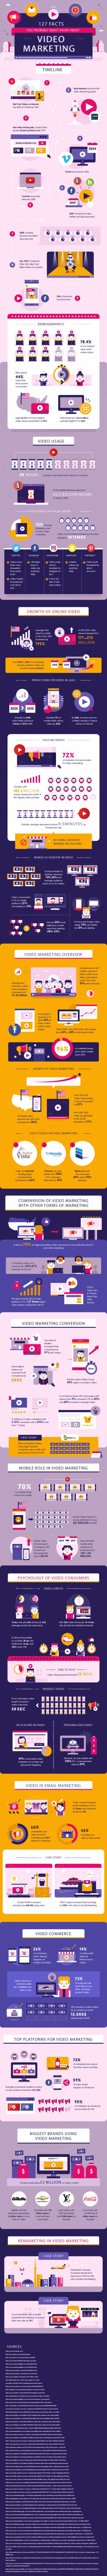 Websitebuilder.org.uk video content marketing infographic